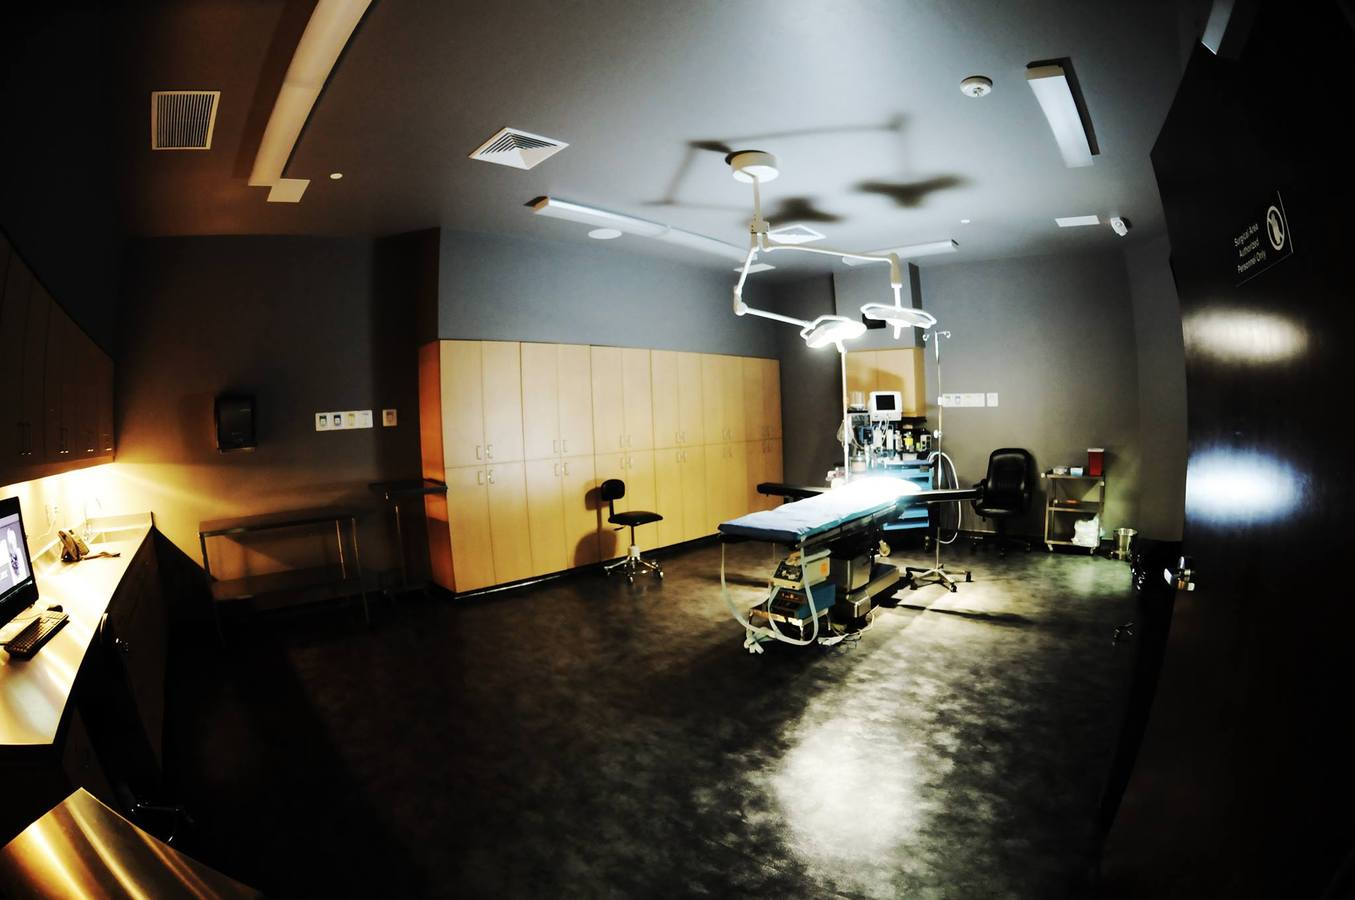 Jones Plastic Surgery Surgical Room